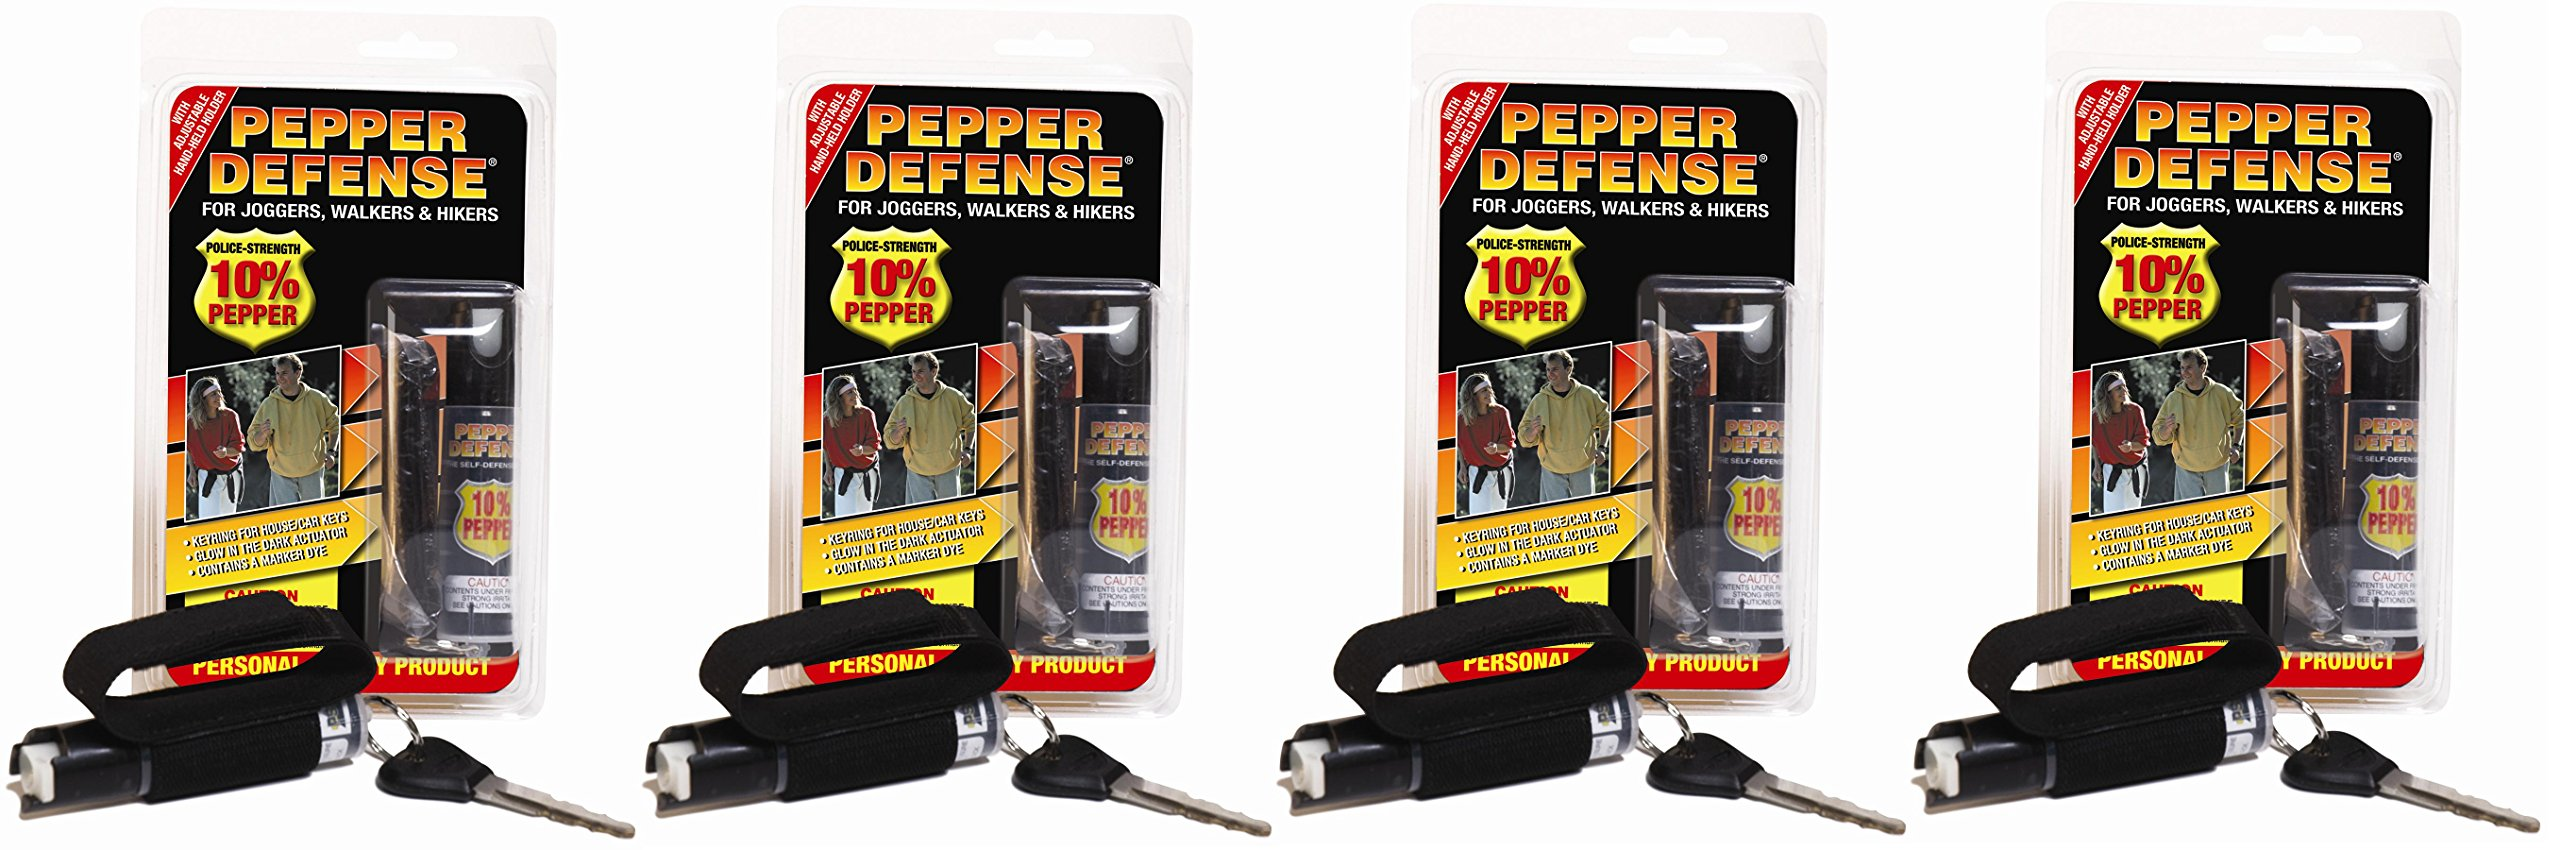 Pepper Defense 4 Pack 10% OC Pepper Spray w/Hand Strap for Jogging, Running, Walking, Hiking - Max Strength Police Formula - Emergency Self Defense Non Lethal Weapon for Safety and Protection